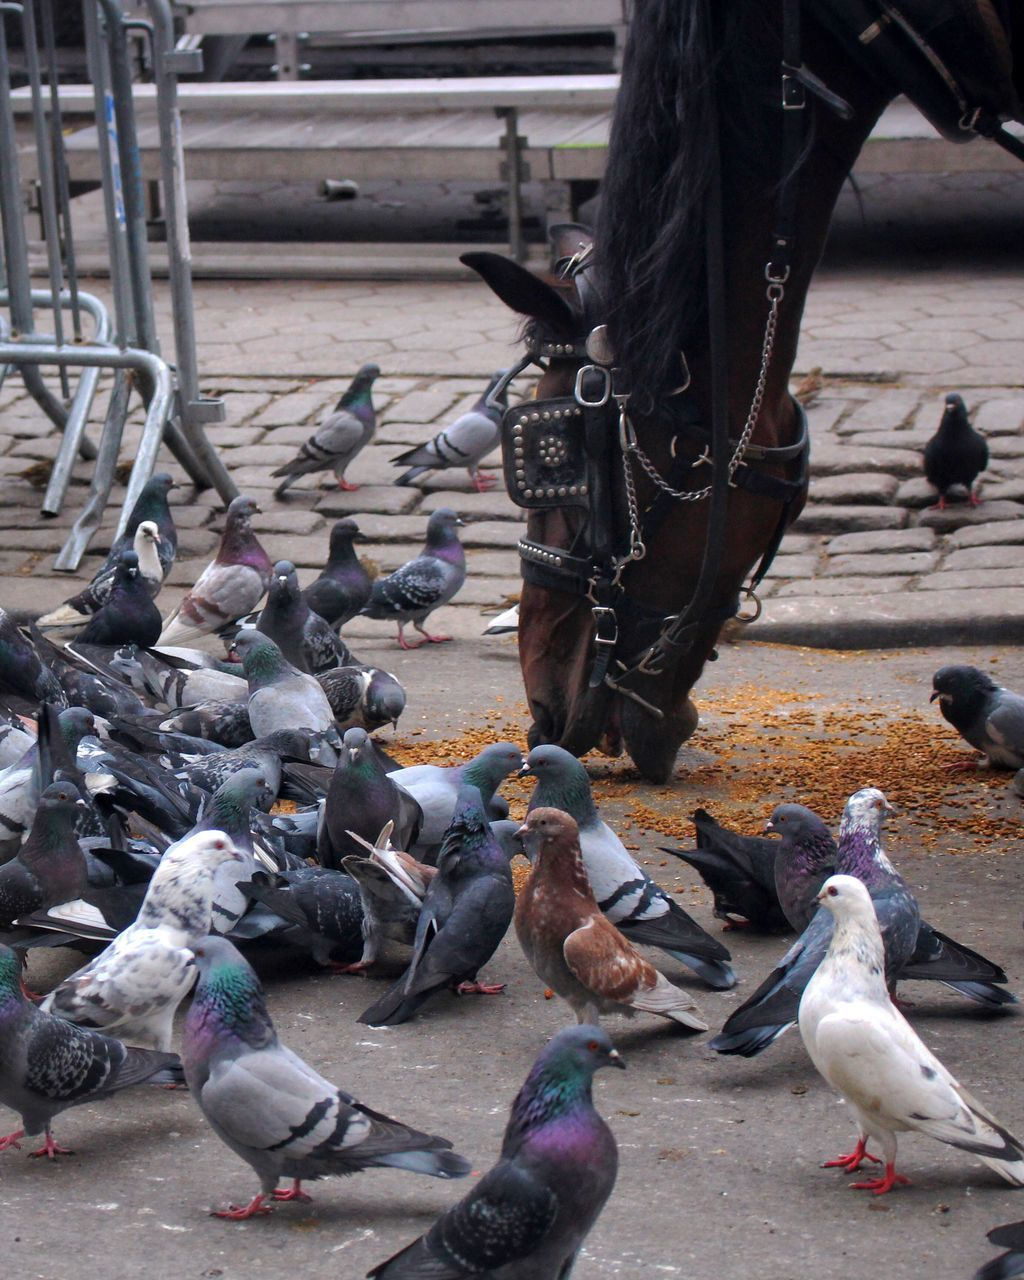 Horse Eating Amidst Pigeons On Street